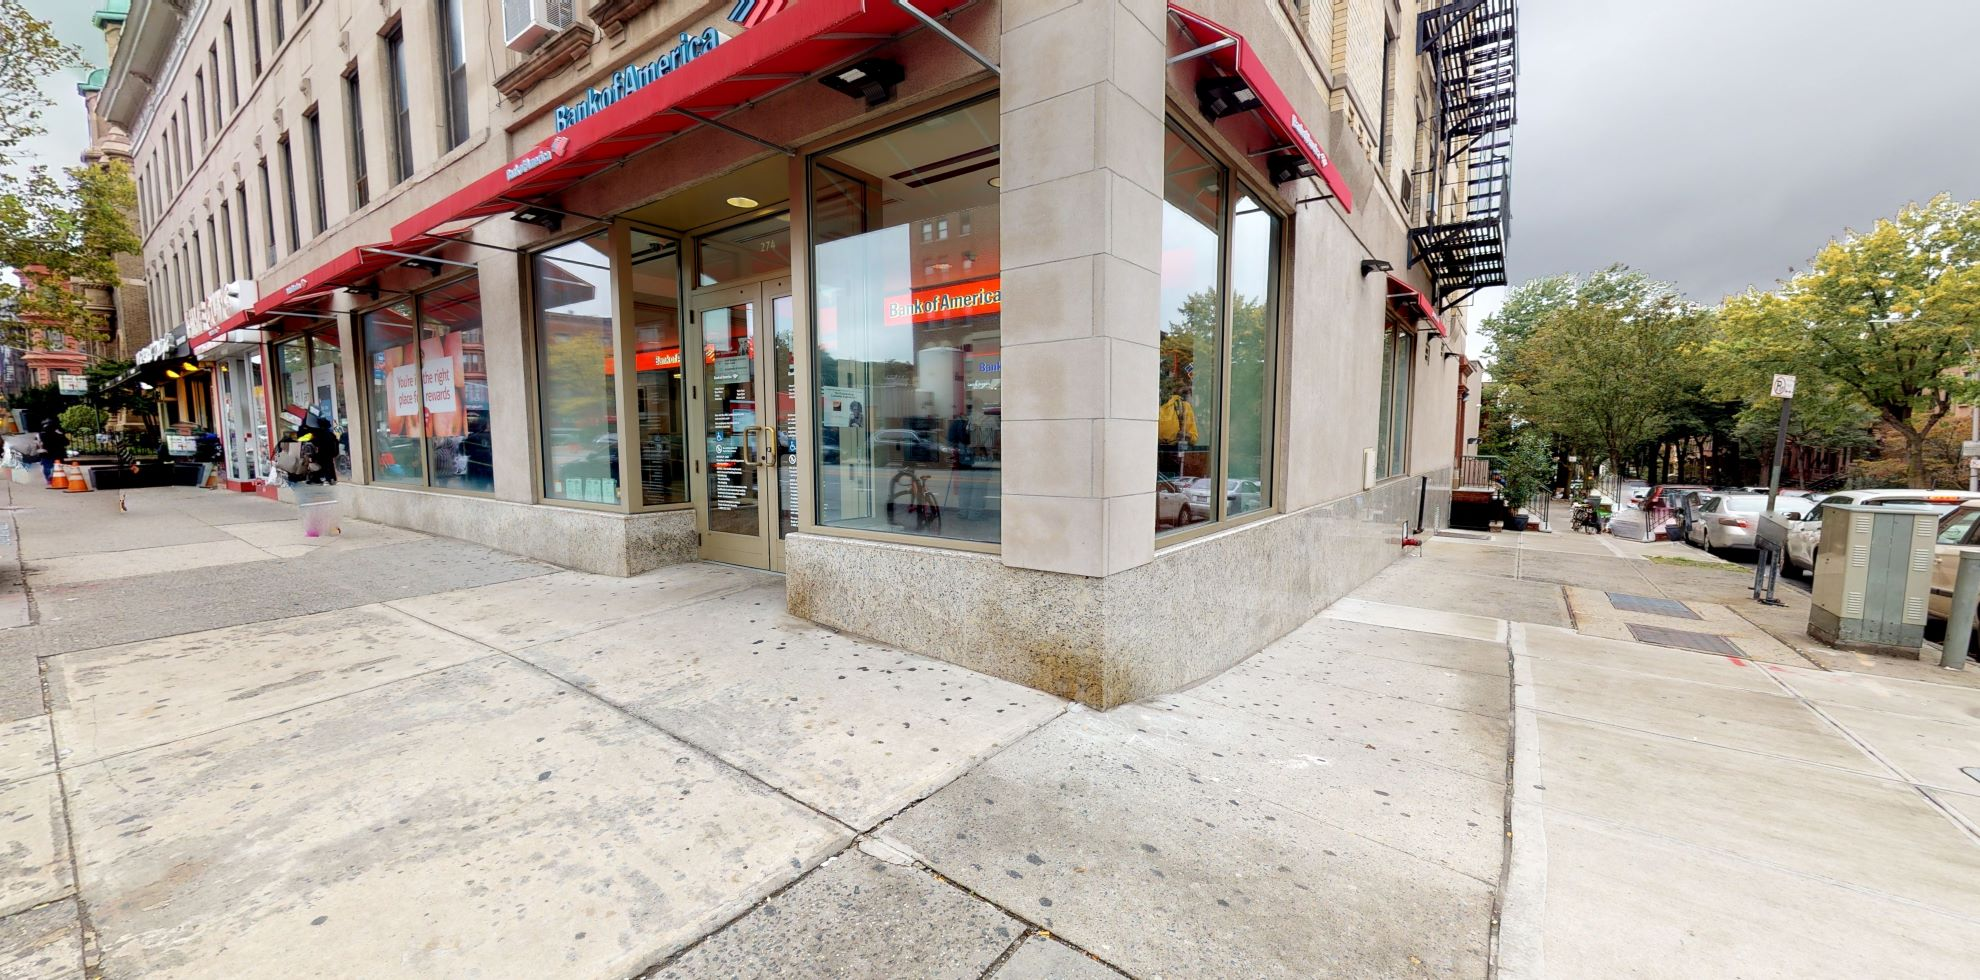 Bank of America financial center with walk-up ATM   274 7th Ave, Brooklyn, NY 11215